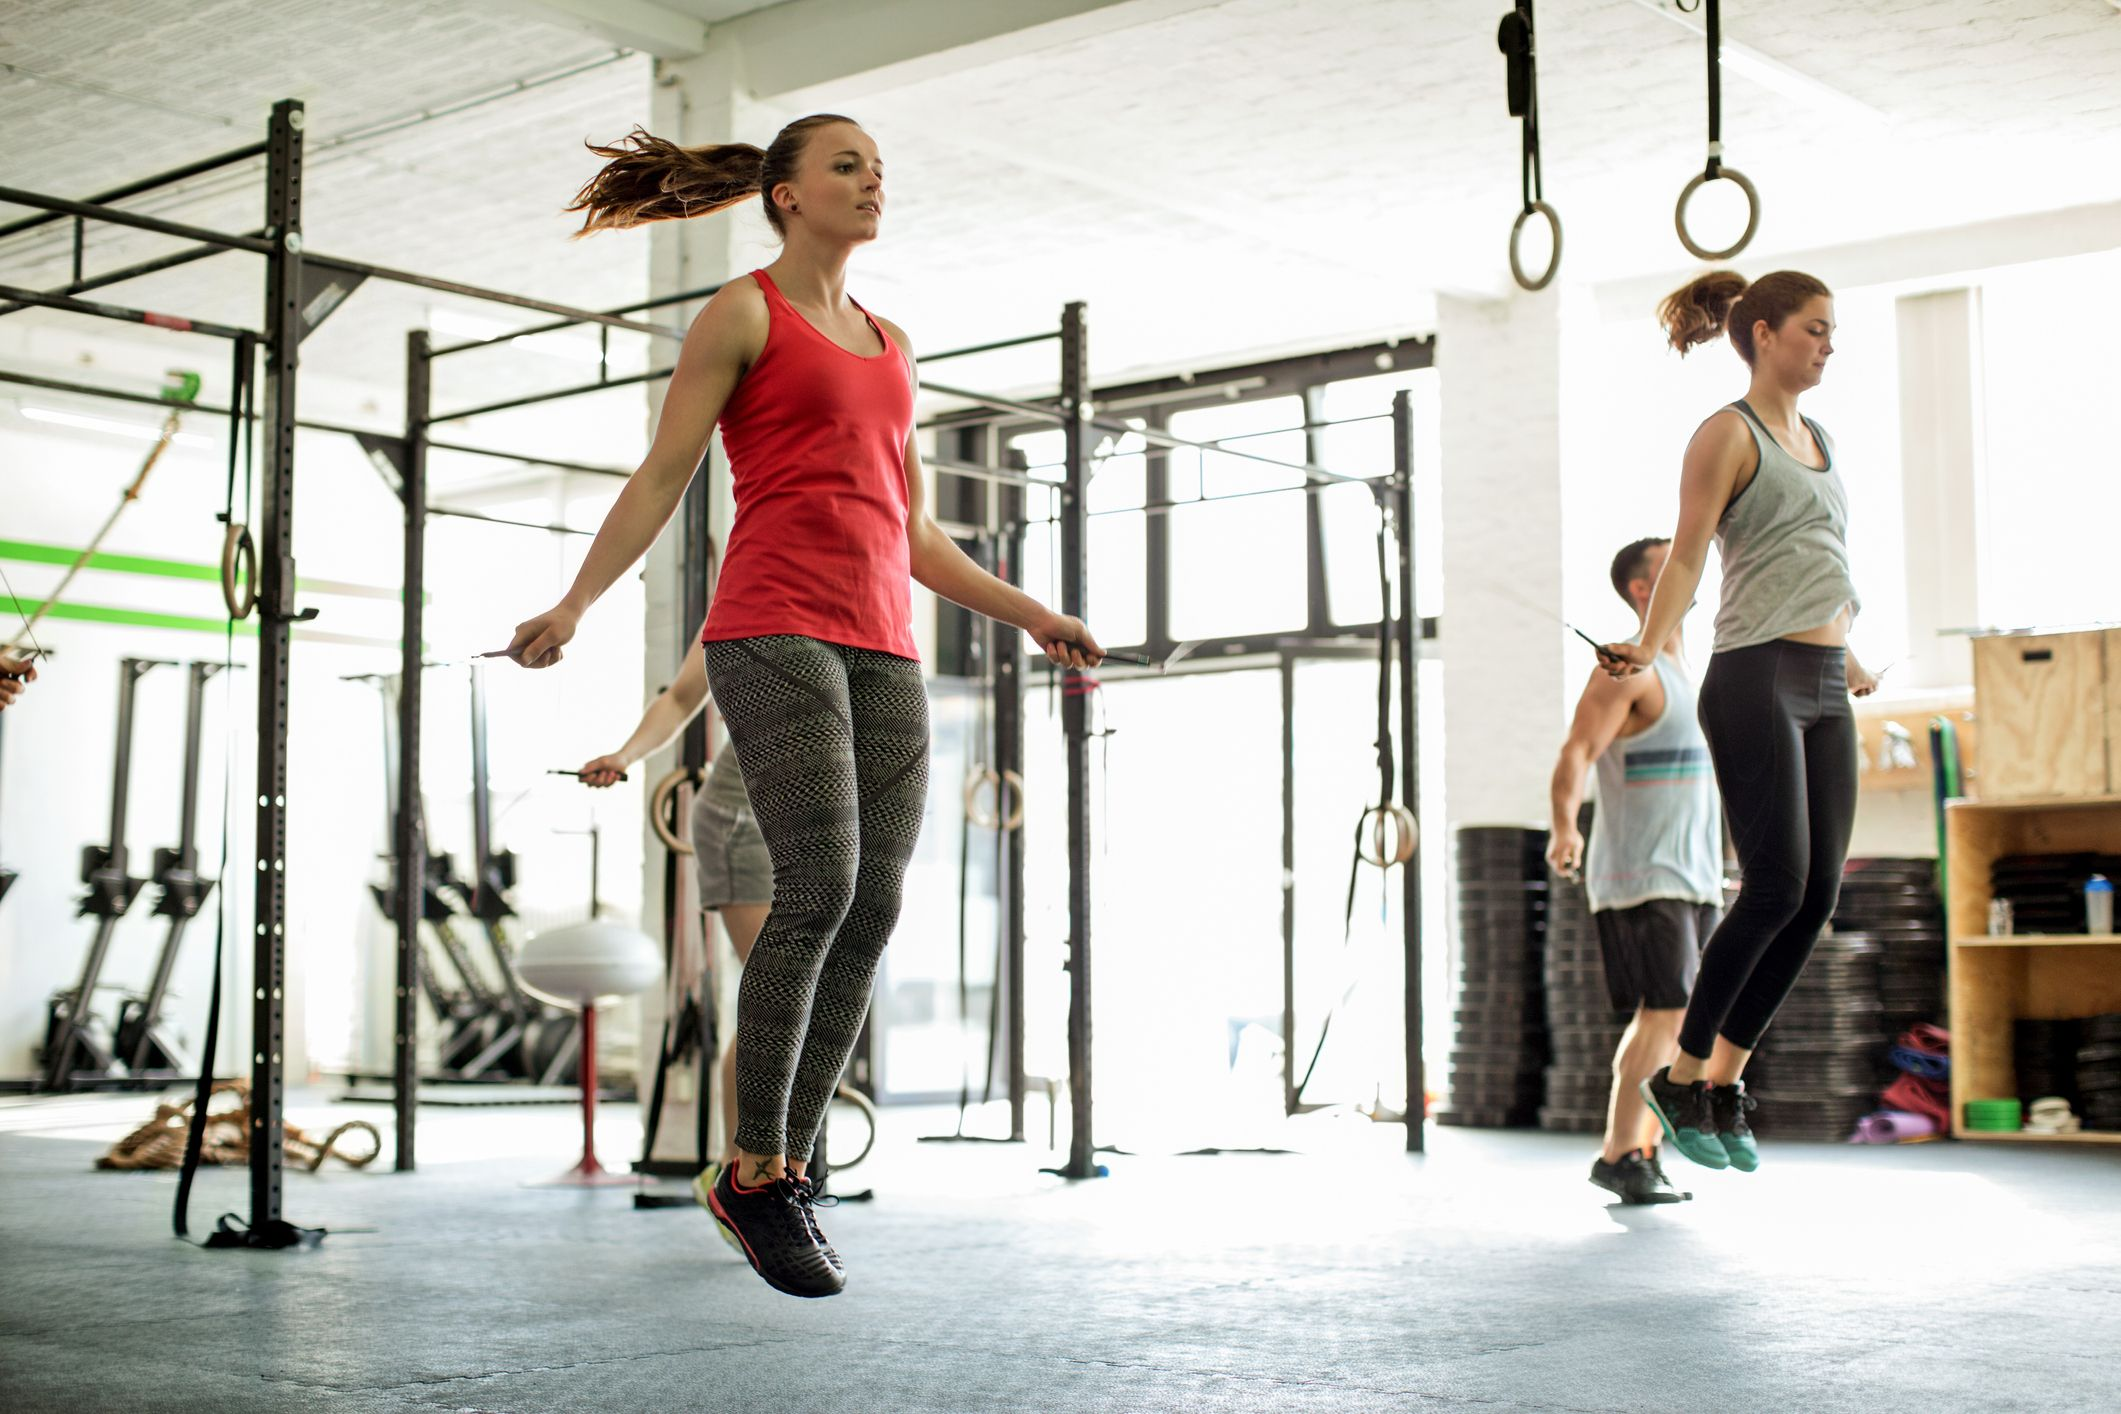 How Good a Workout Is Jumping Rope, Really?